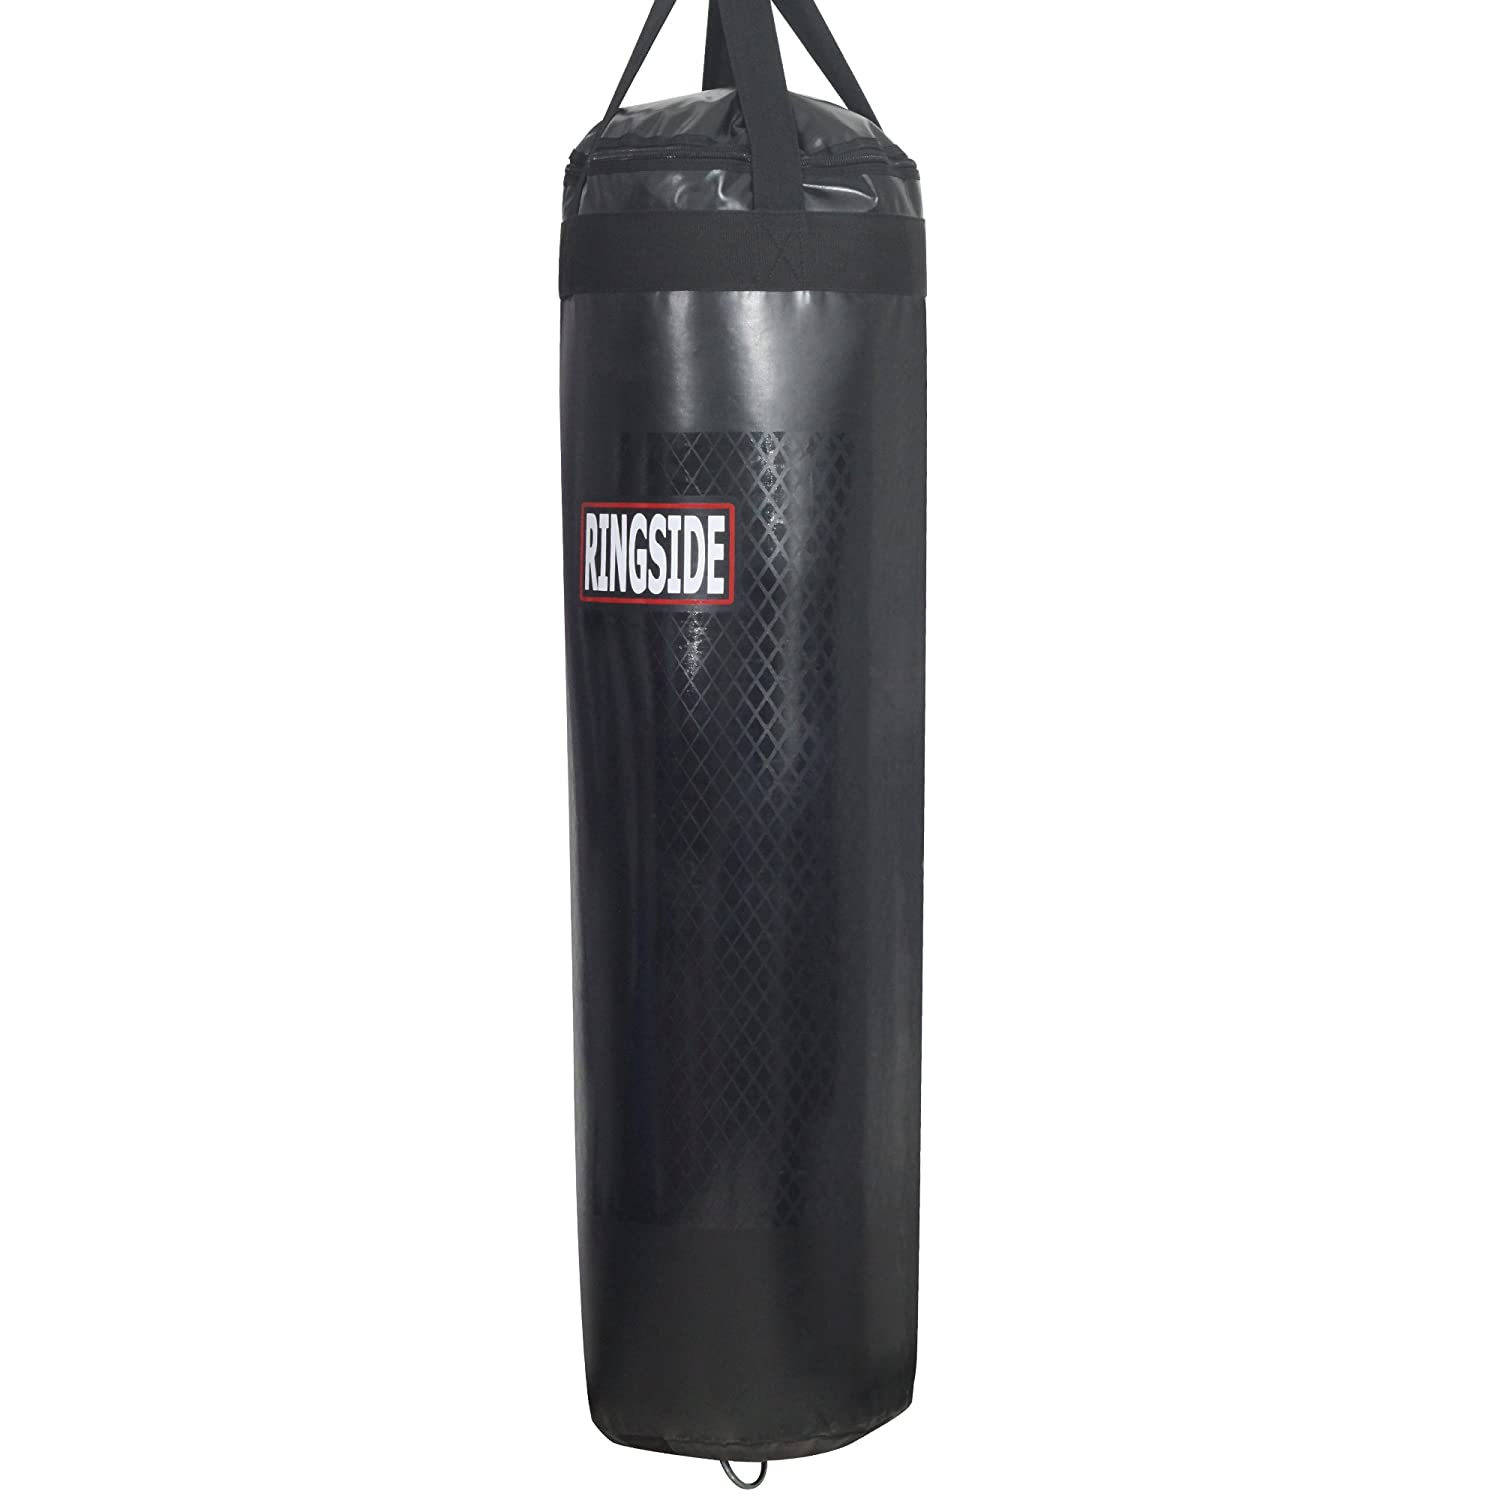 Ringside 100 Large Unfilled Punching Unfilled Bag, Ringside 36cm Black x 120cm , Black B00WZVL0EM, JONNY BEE:a9baf89f --- capela.dominiotemporario.com